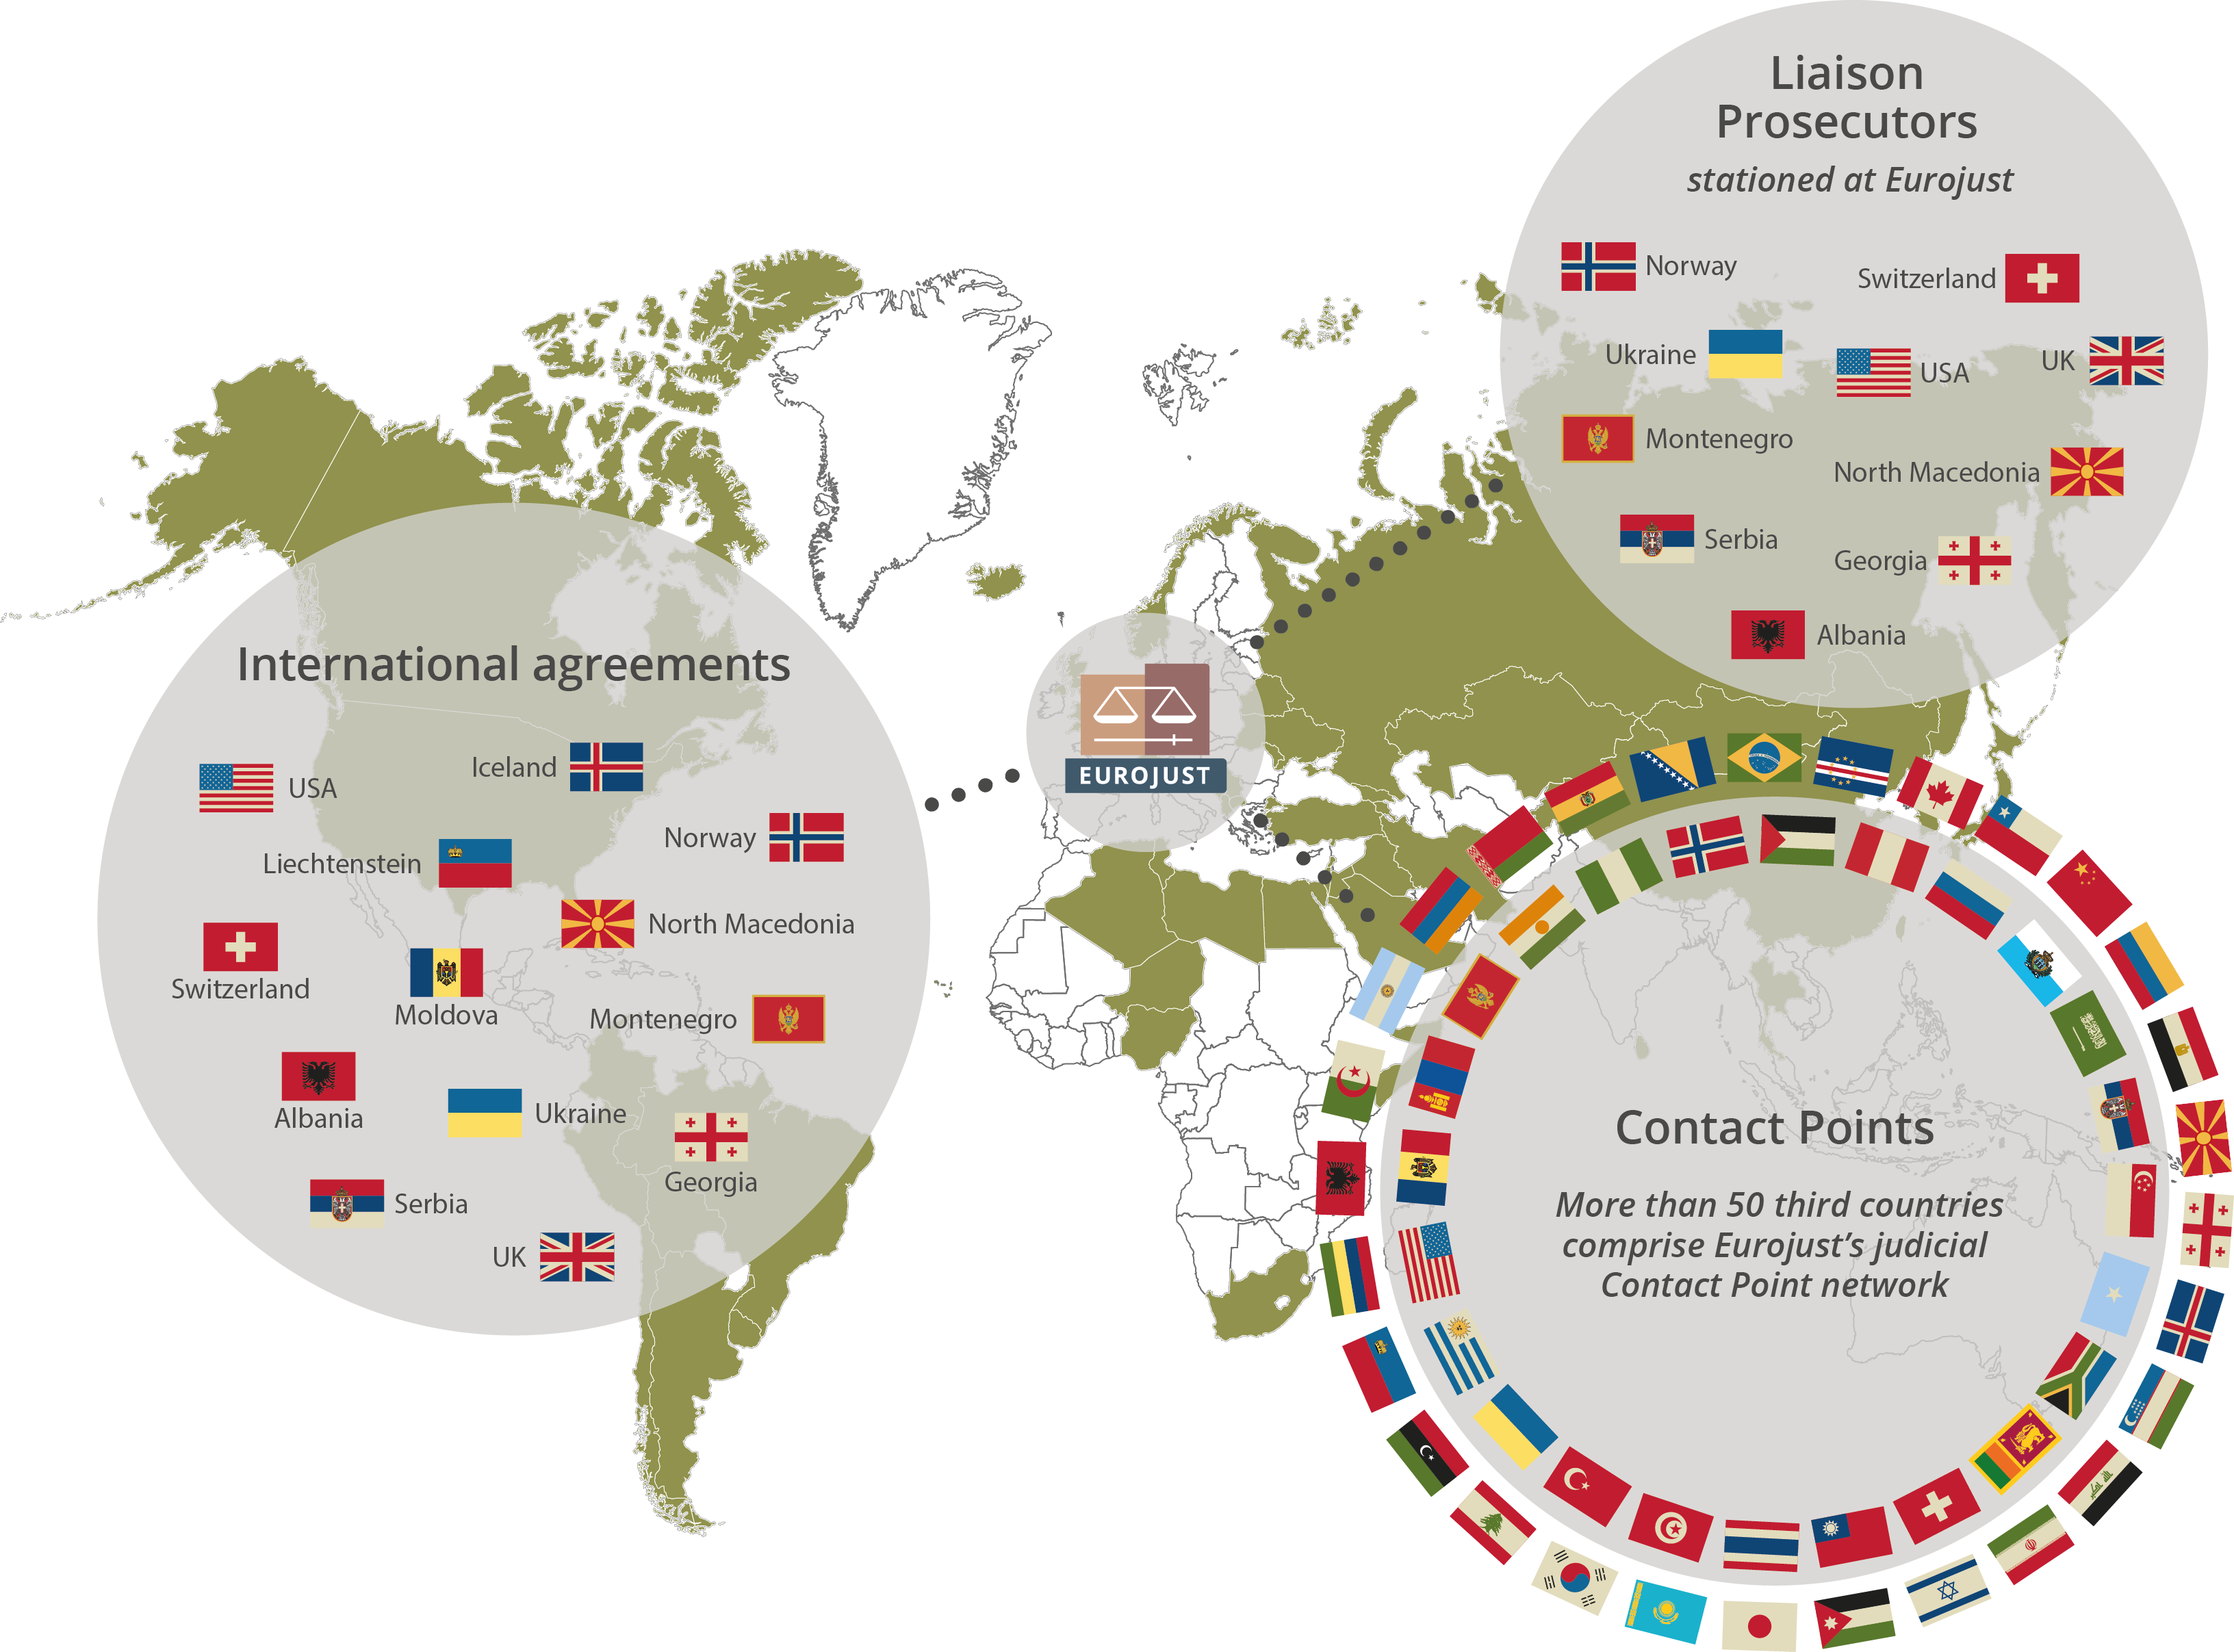 Infographic showing Eurojust's cooperation network of Liaison Prosecutors, contact points and international agreements